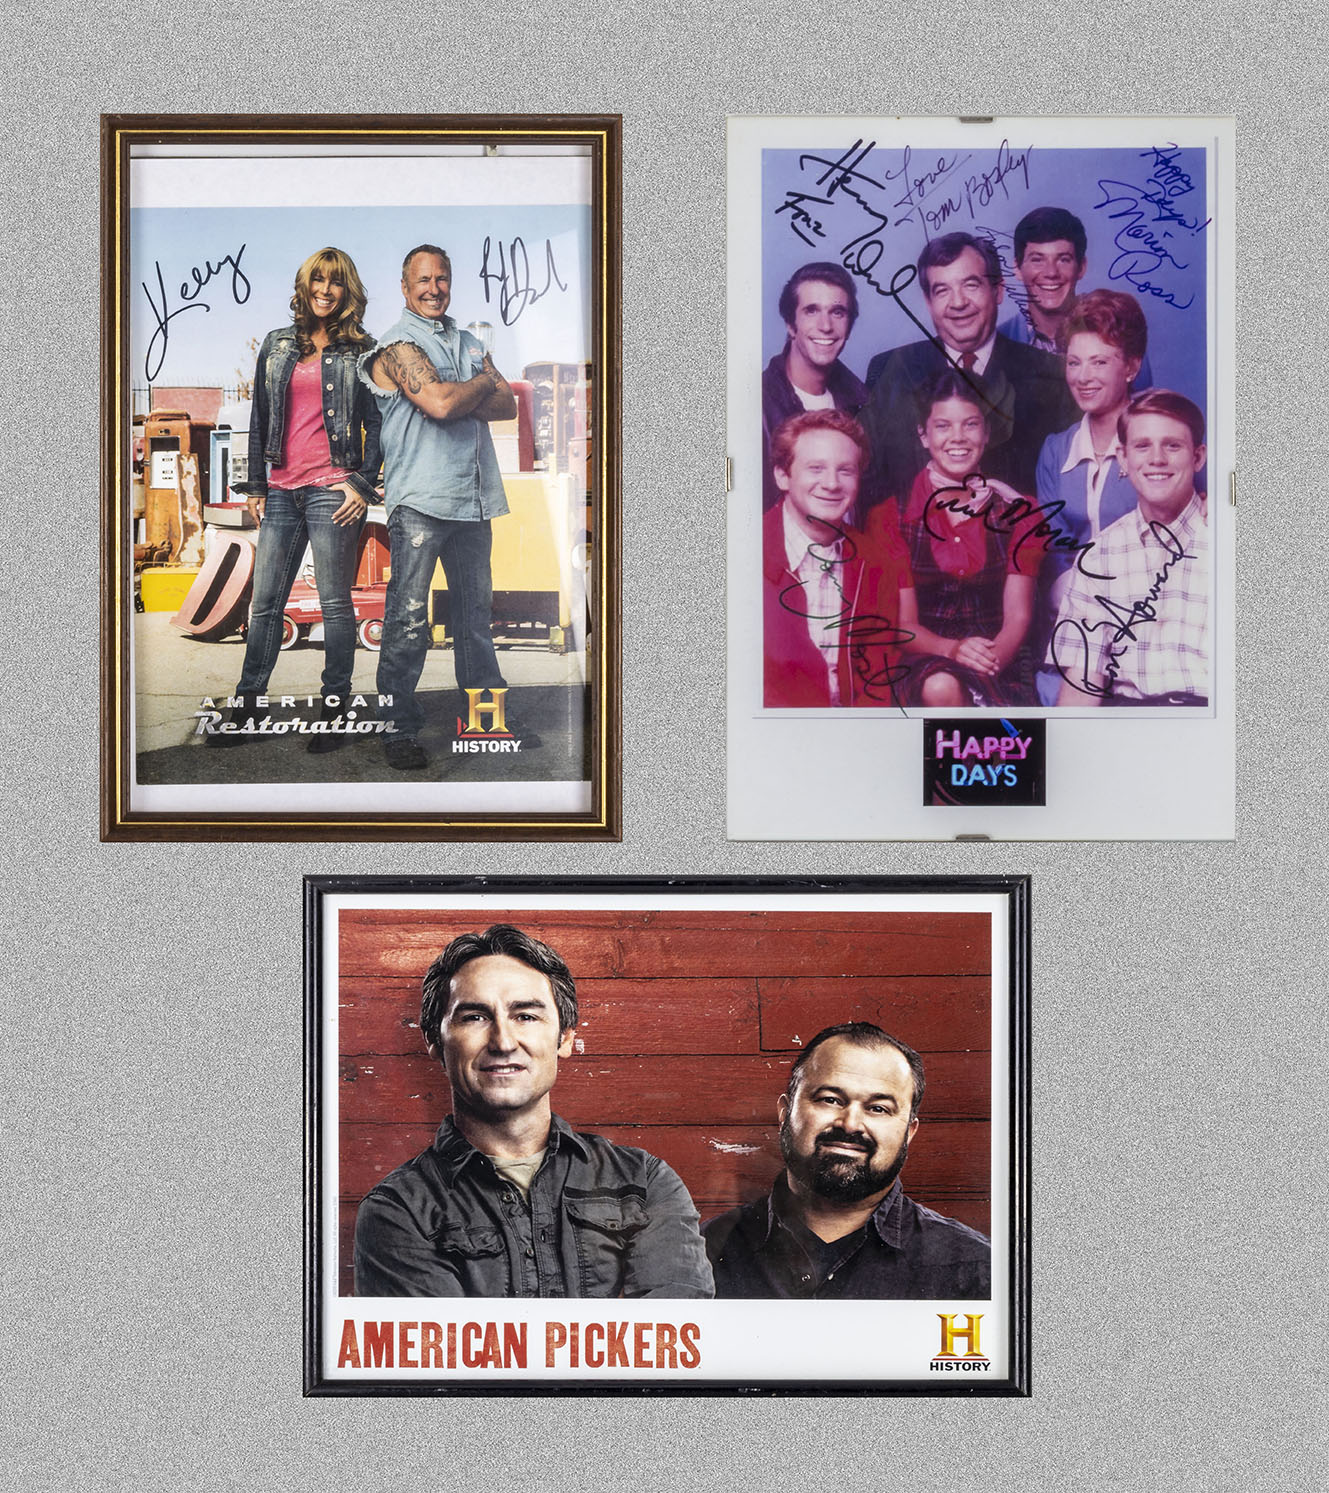 Two framed autographed photographs, Happy Days and American Restoration together with American